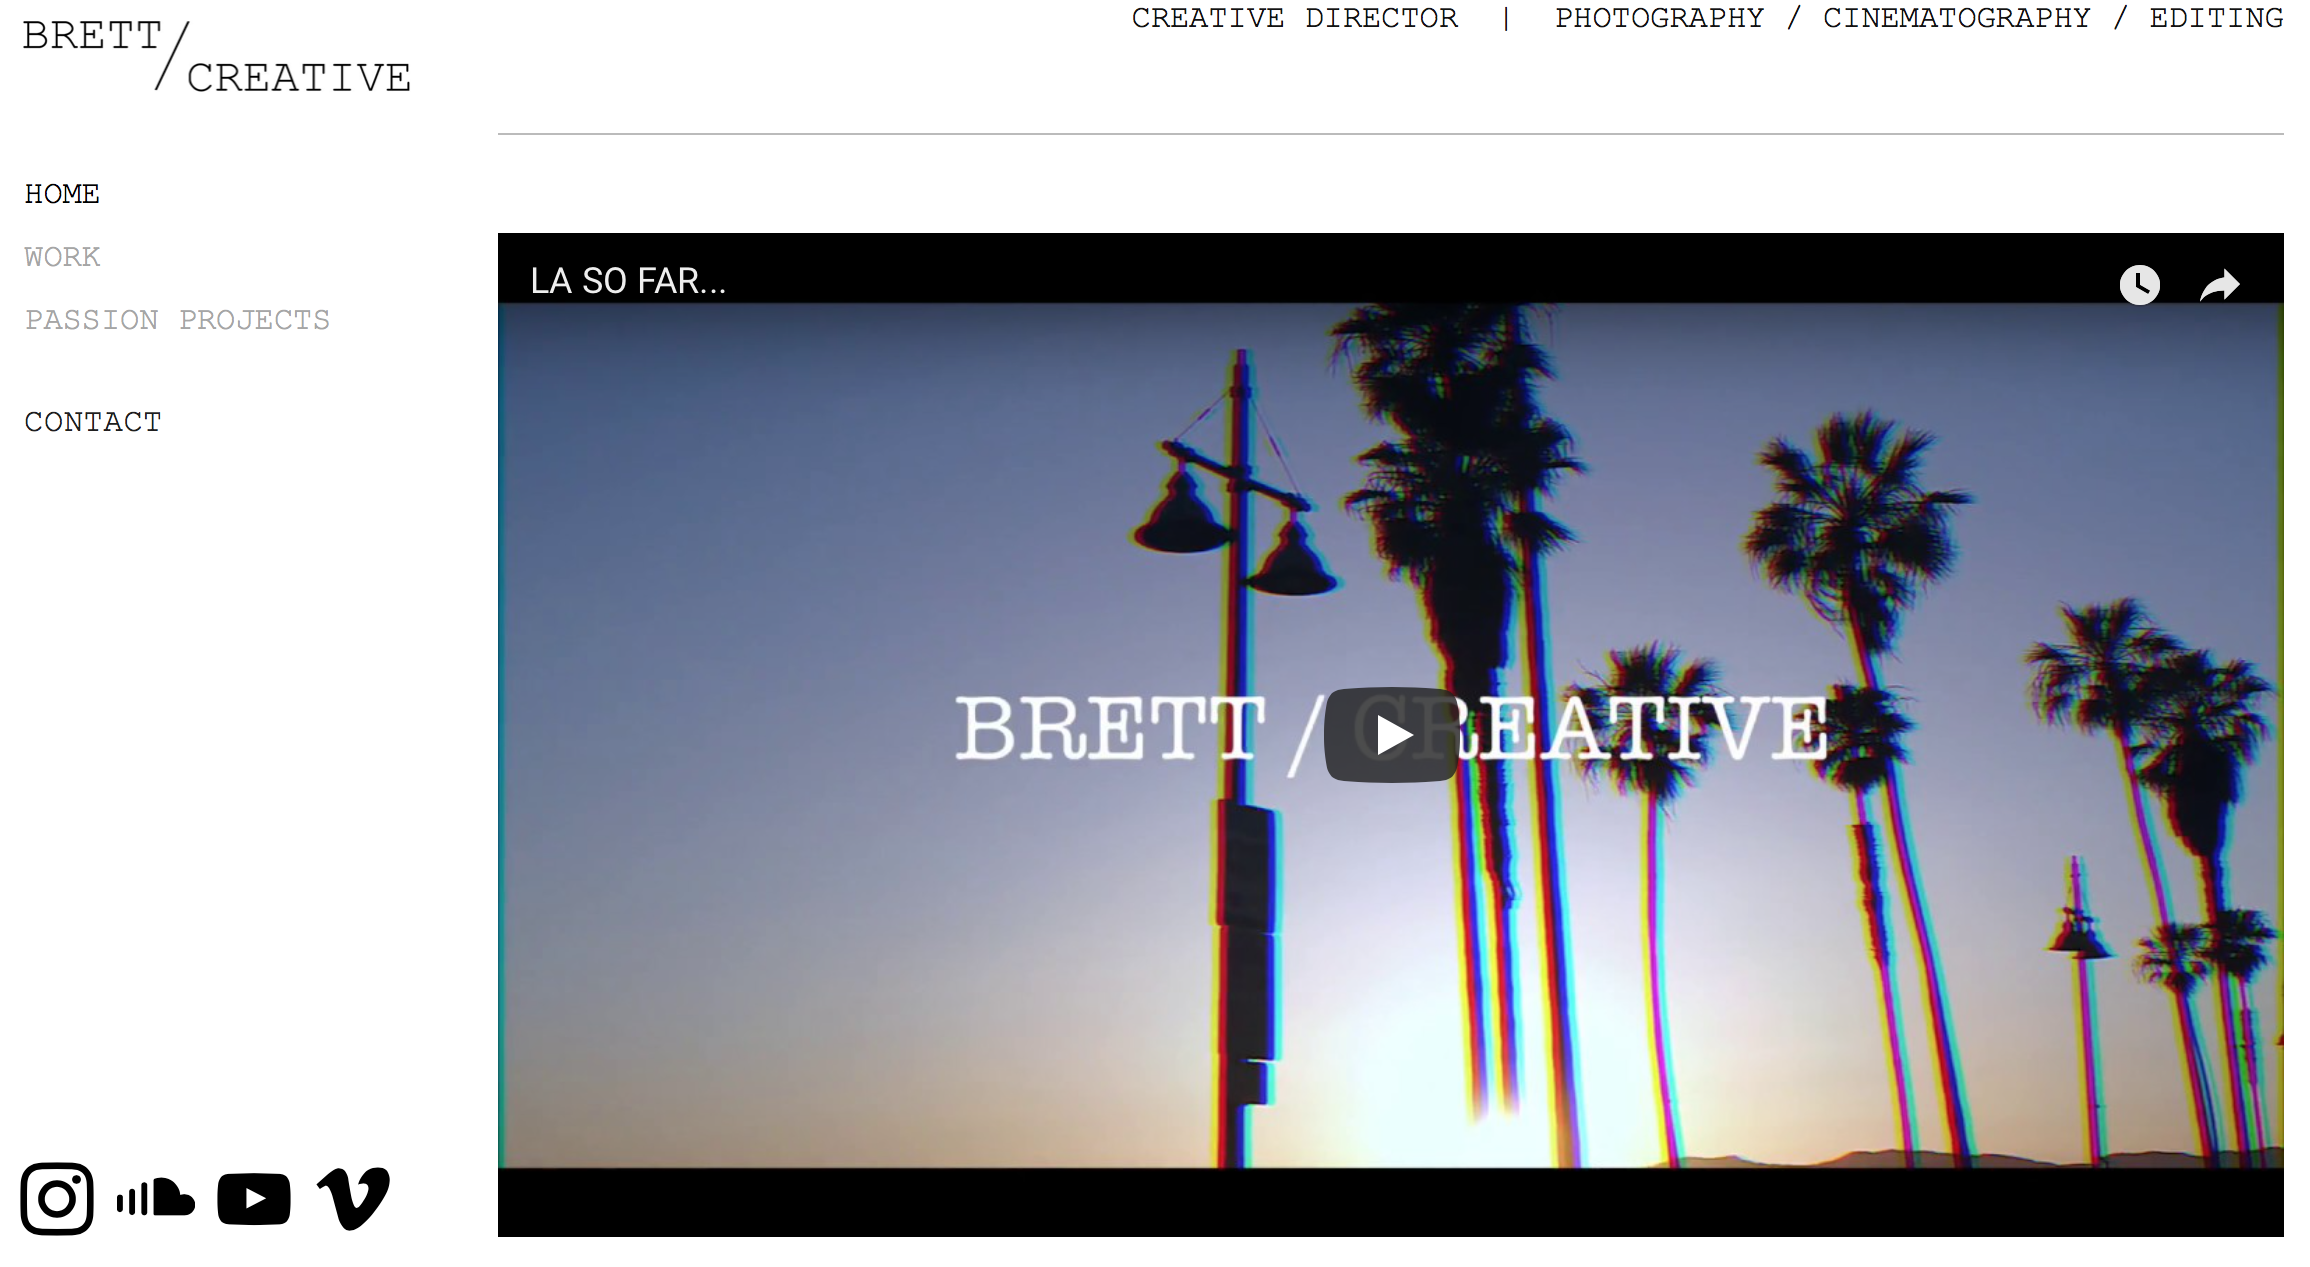 Brett / Creative - Click Here To Visit Website